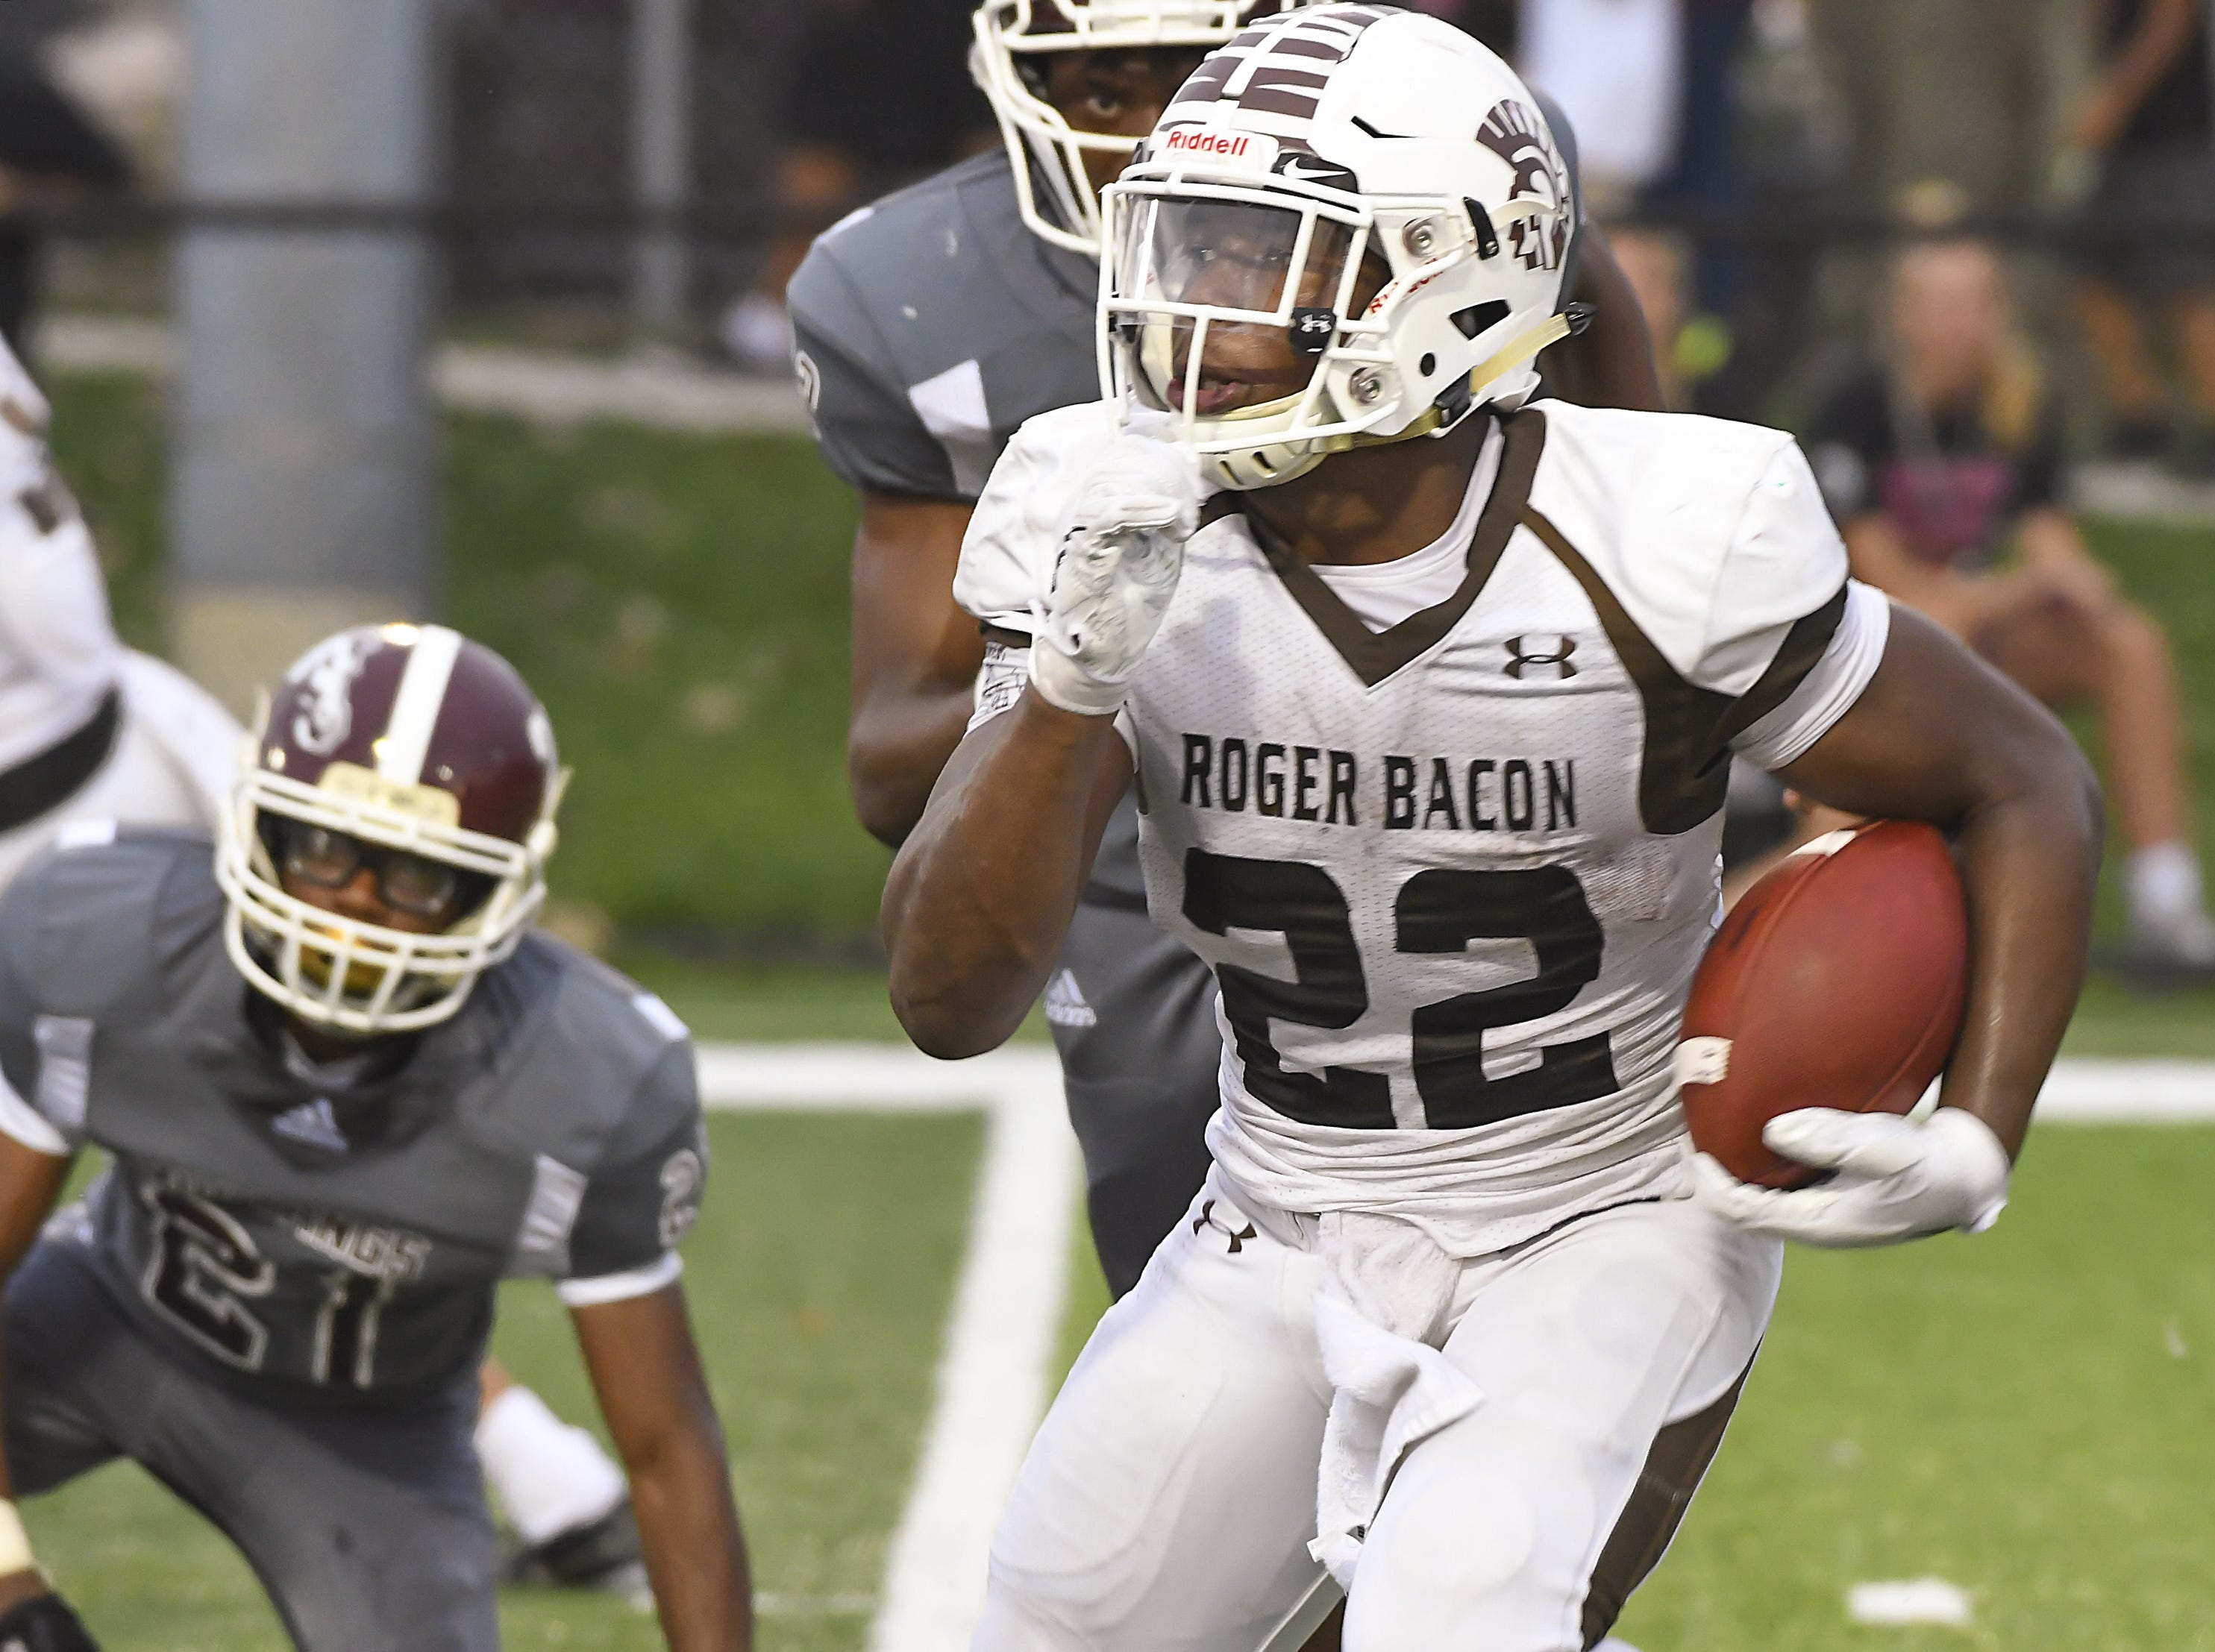 Roger Bacon running back Corey Kiner (22) runs the ball against Western Hills, Western Hills High School, Aug. 31, 2018